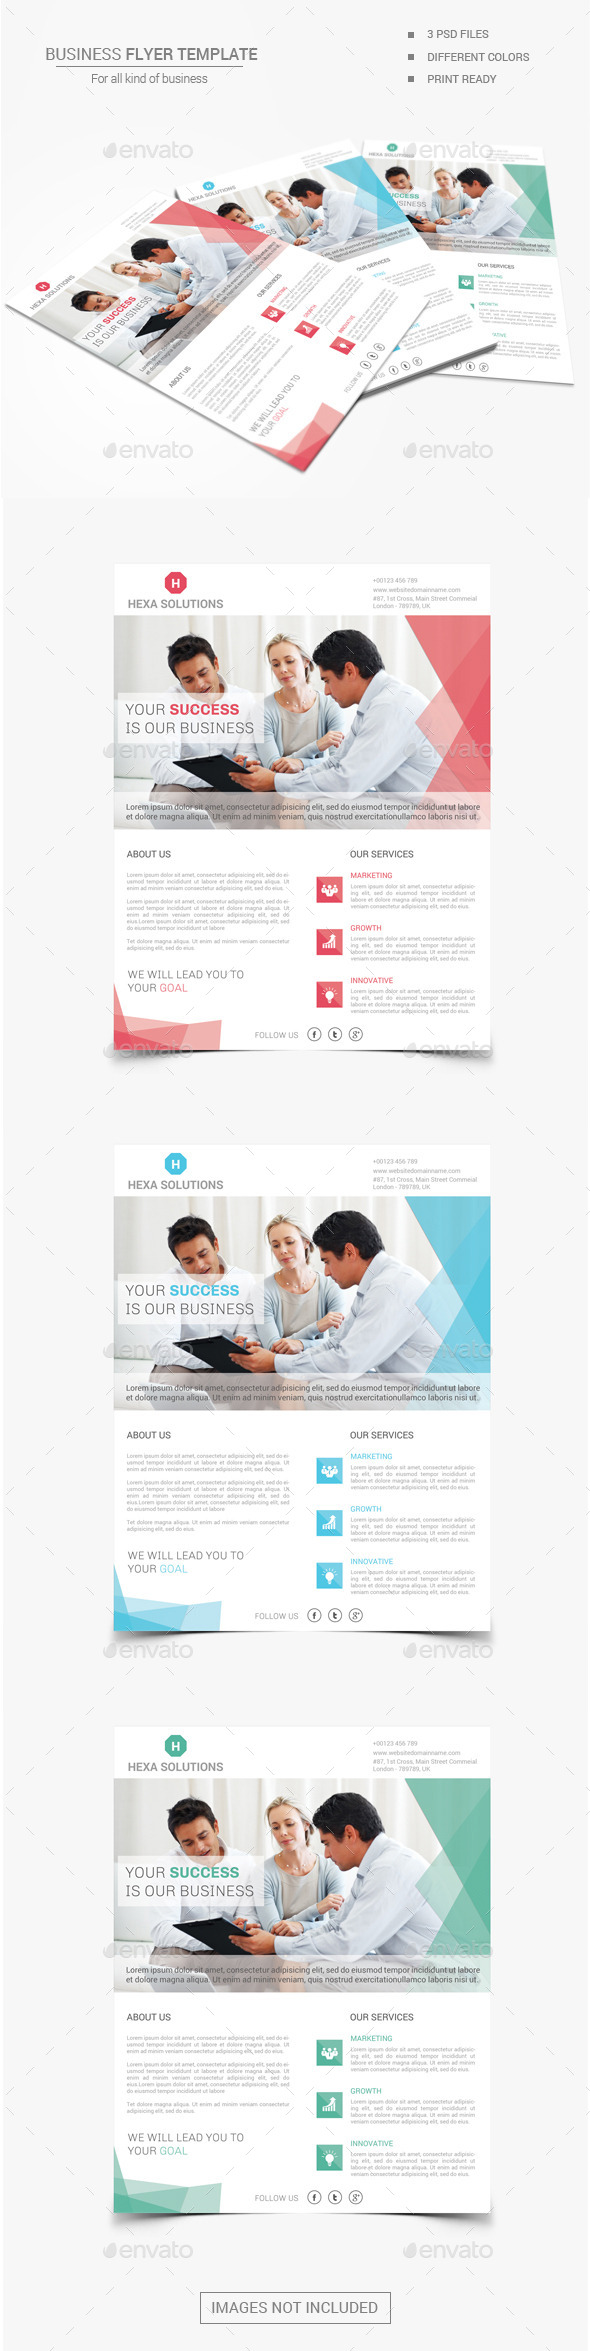 GraphicRiver Business Flyer 03 11463542